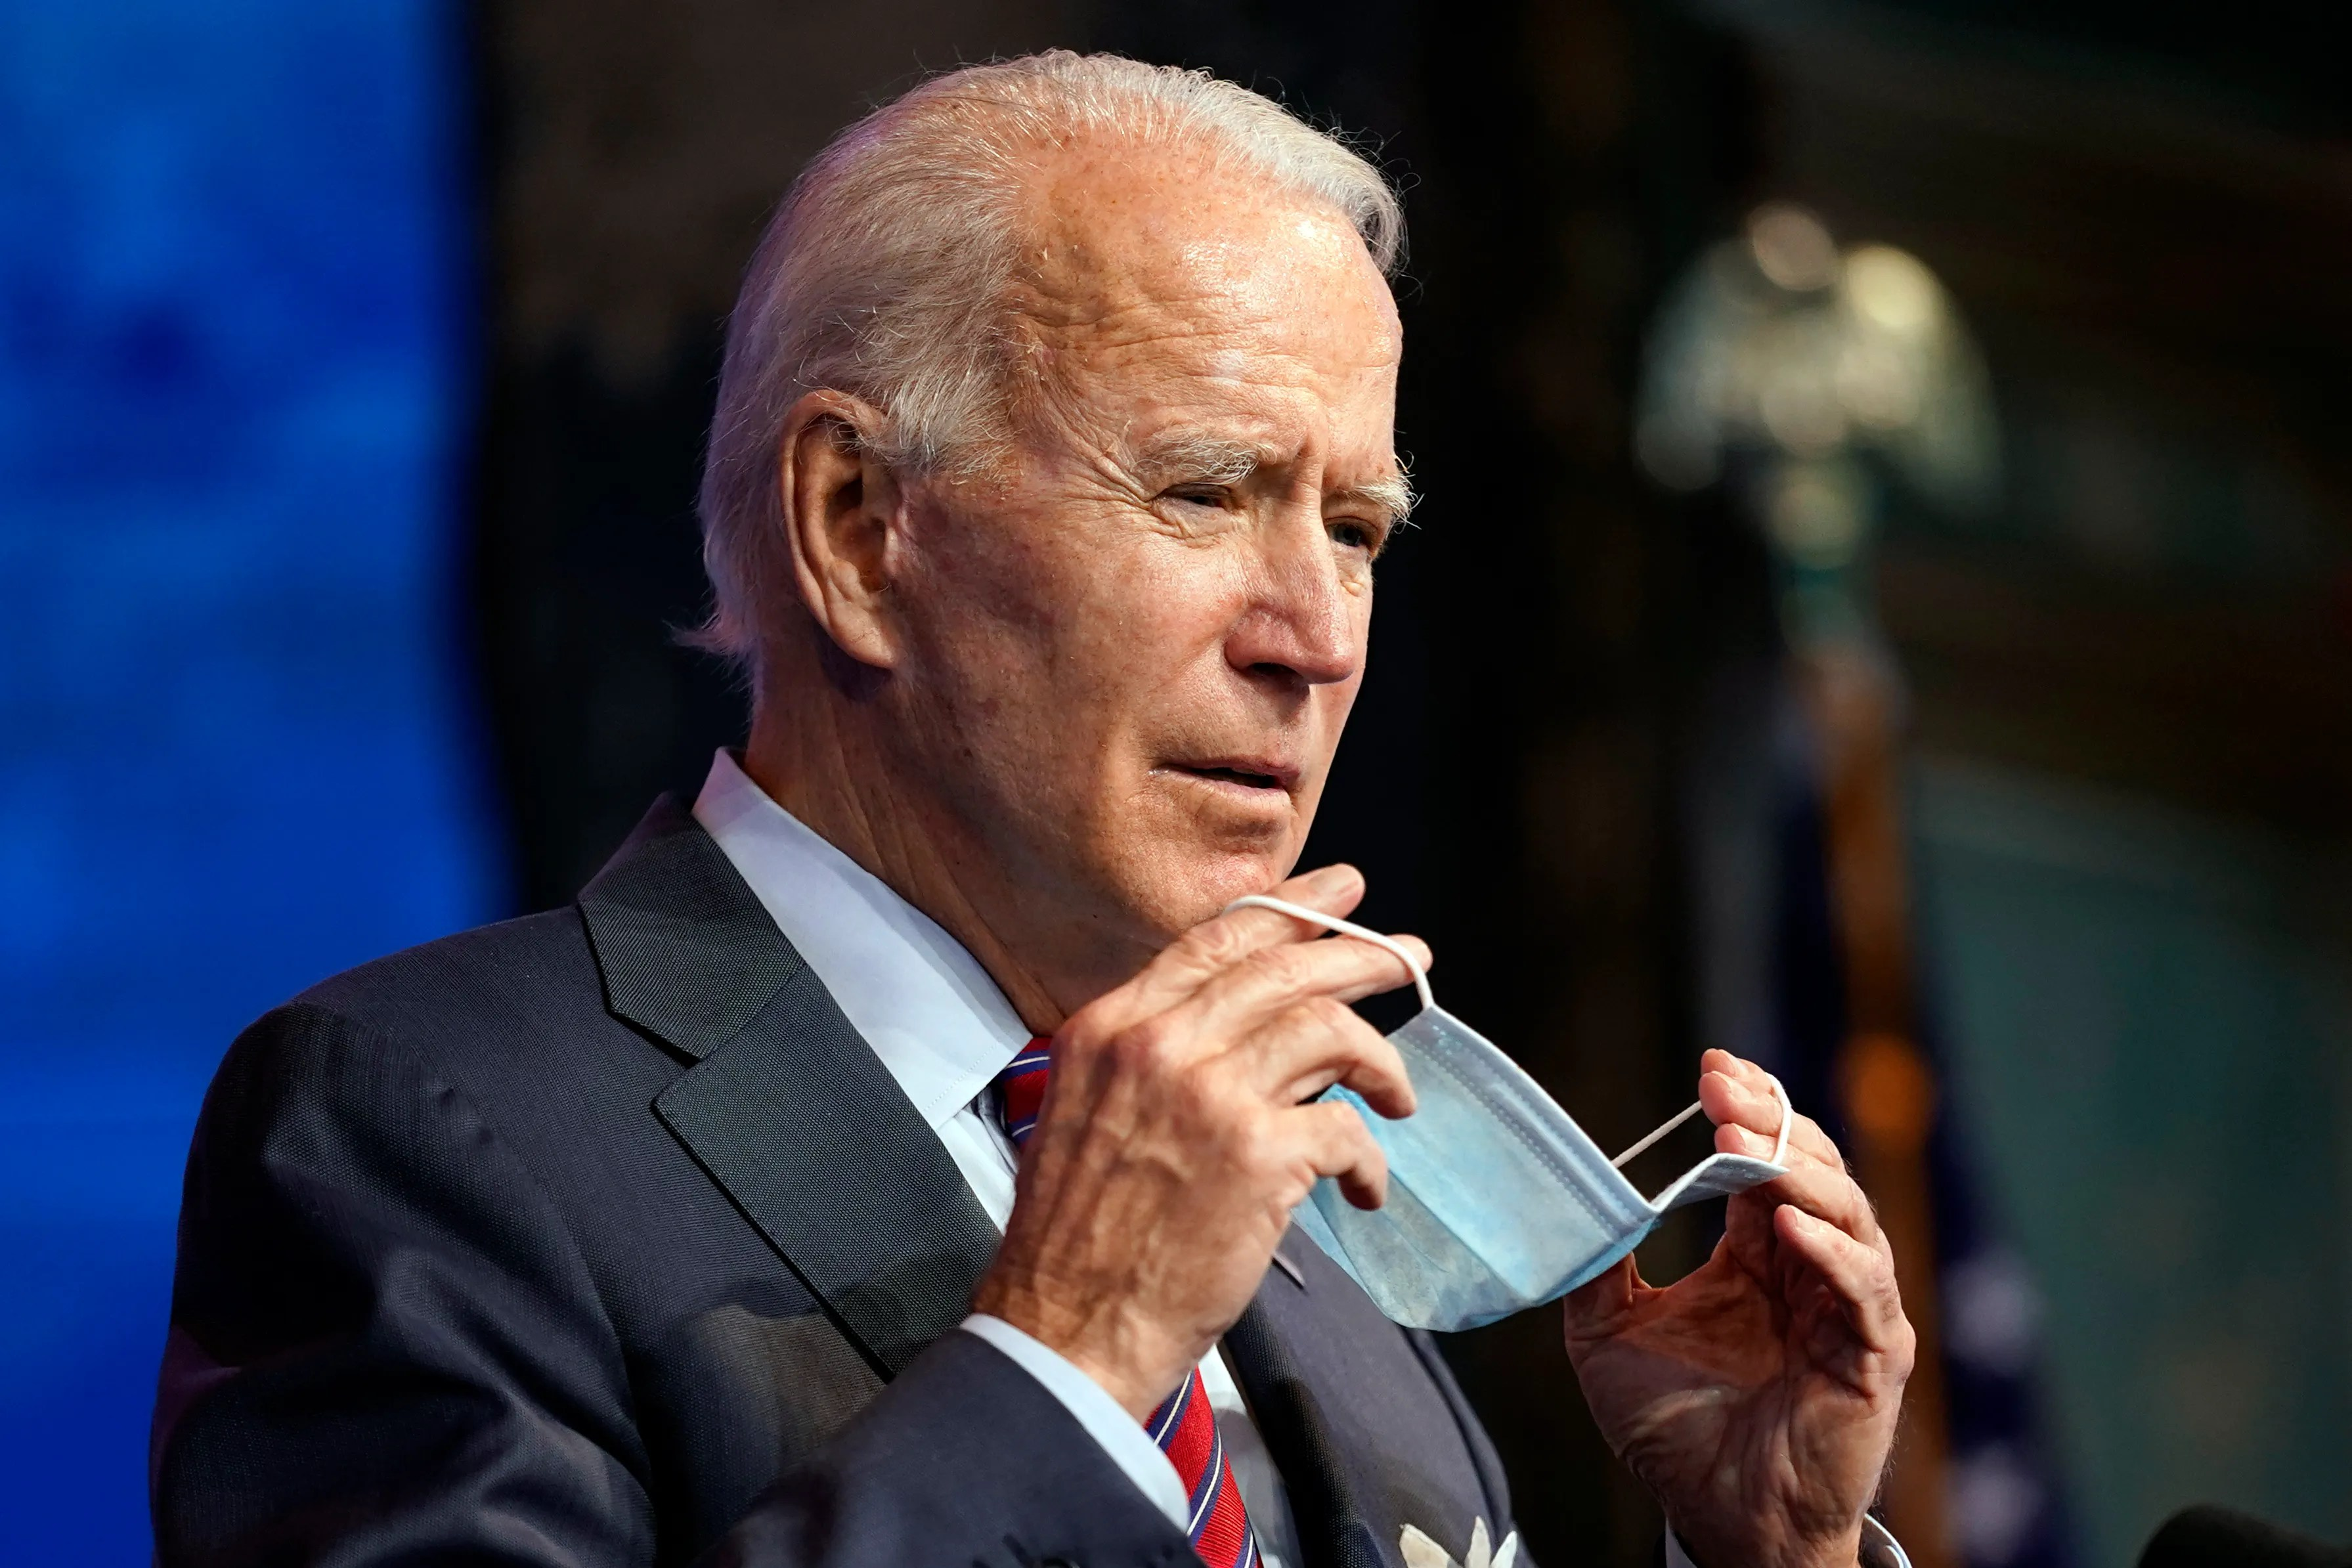 President-elect Joe Biden puts on his face mask after speaking about jobs at the Queen Theater, Friday, December 4, 2020, in Wilmington, Delaware.